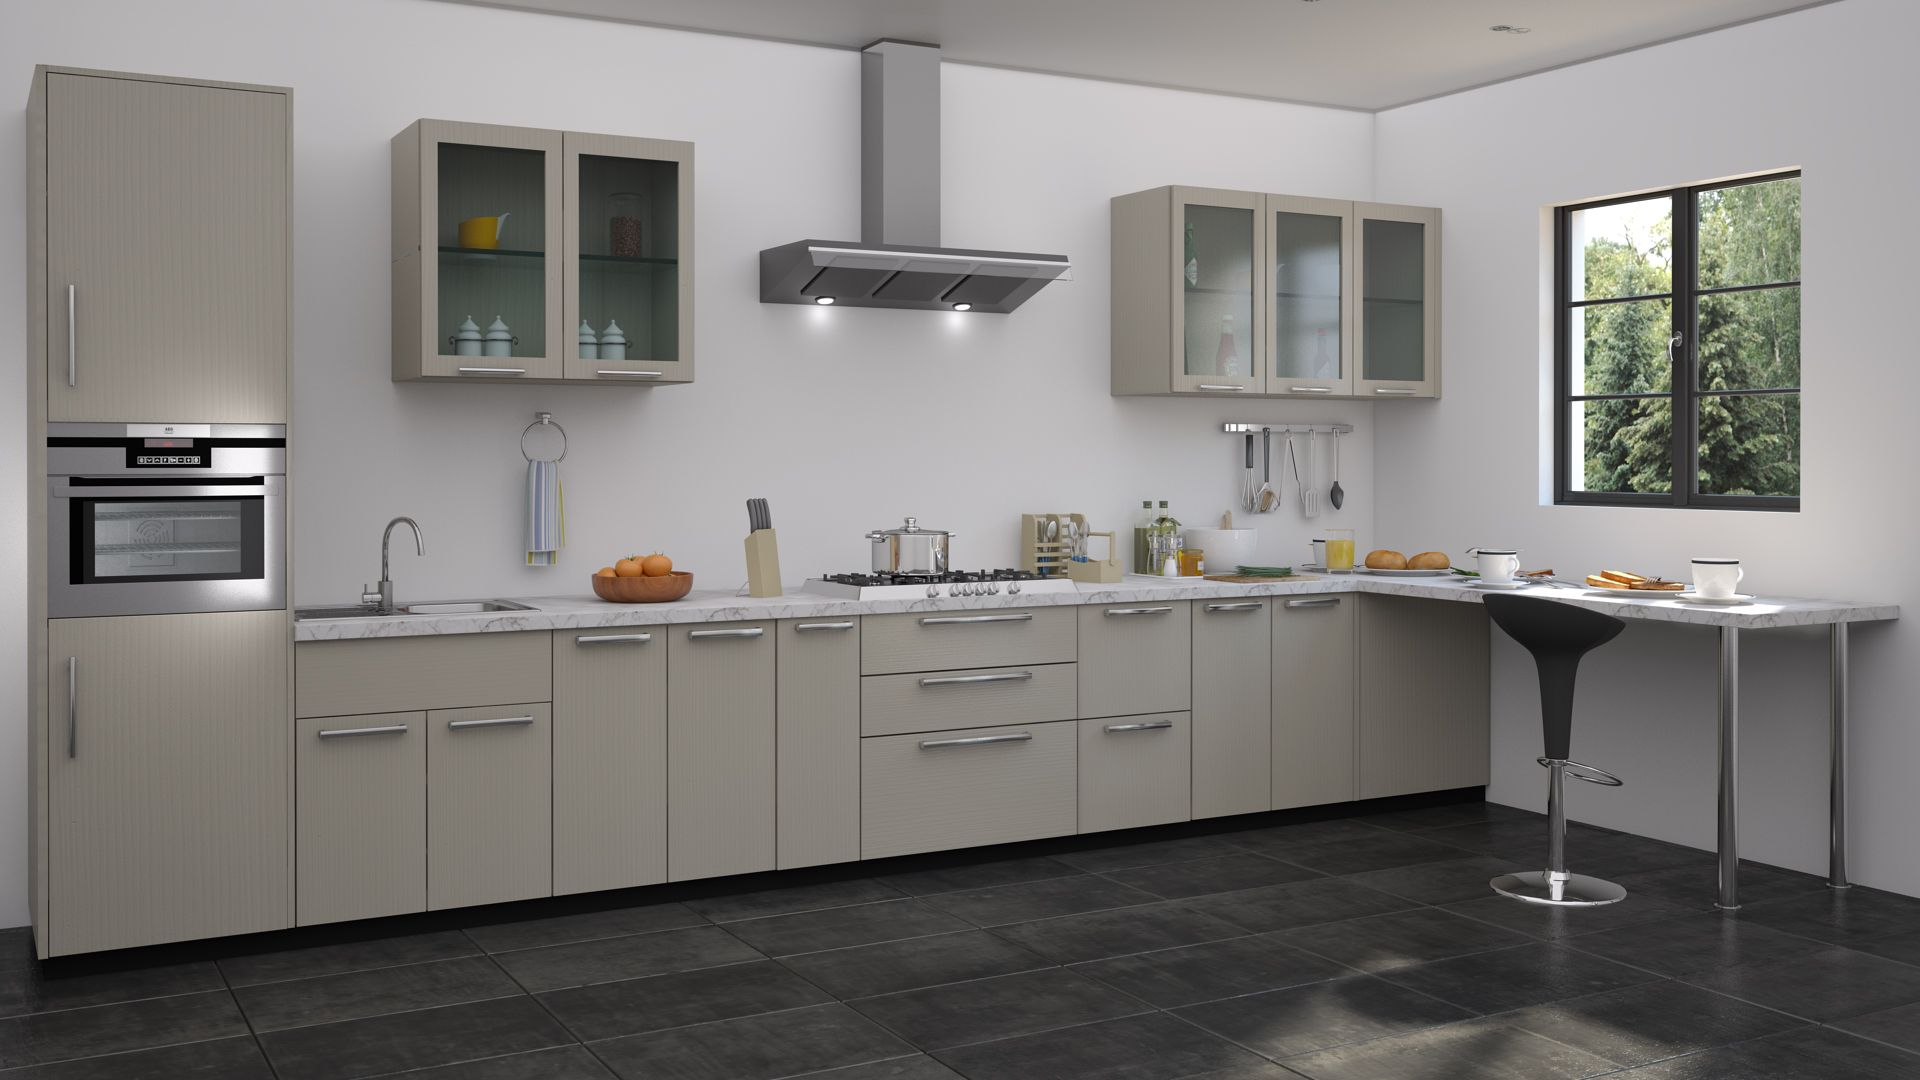 straight modular kitchen ideas blue kitchen interior interior design kitchen kitchen design on kitchen ideas yellow and grey id=48537